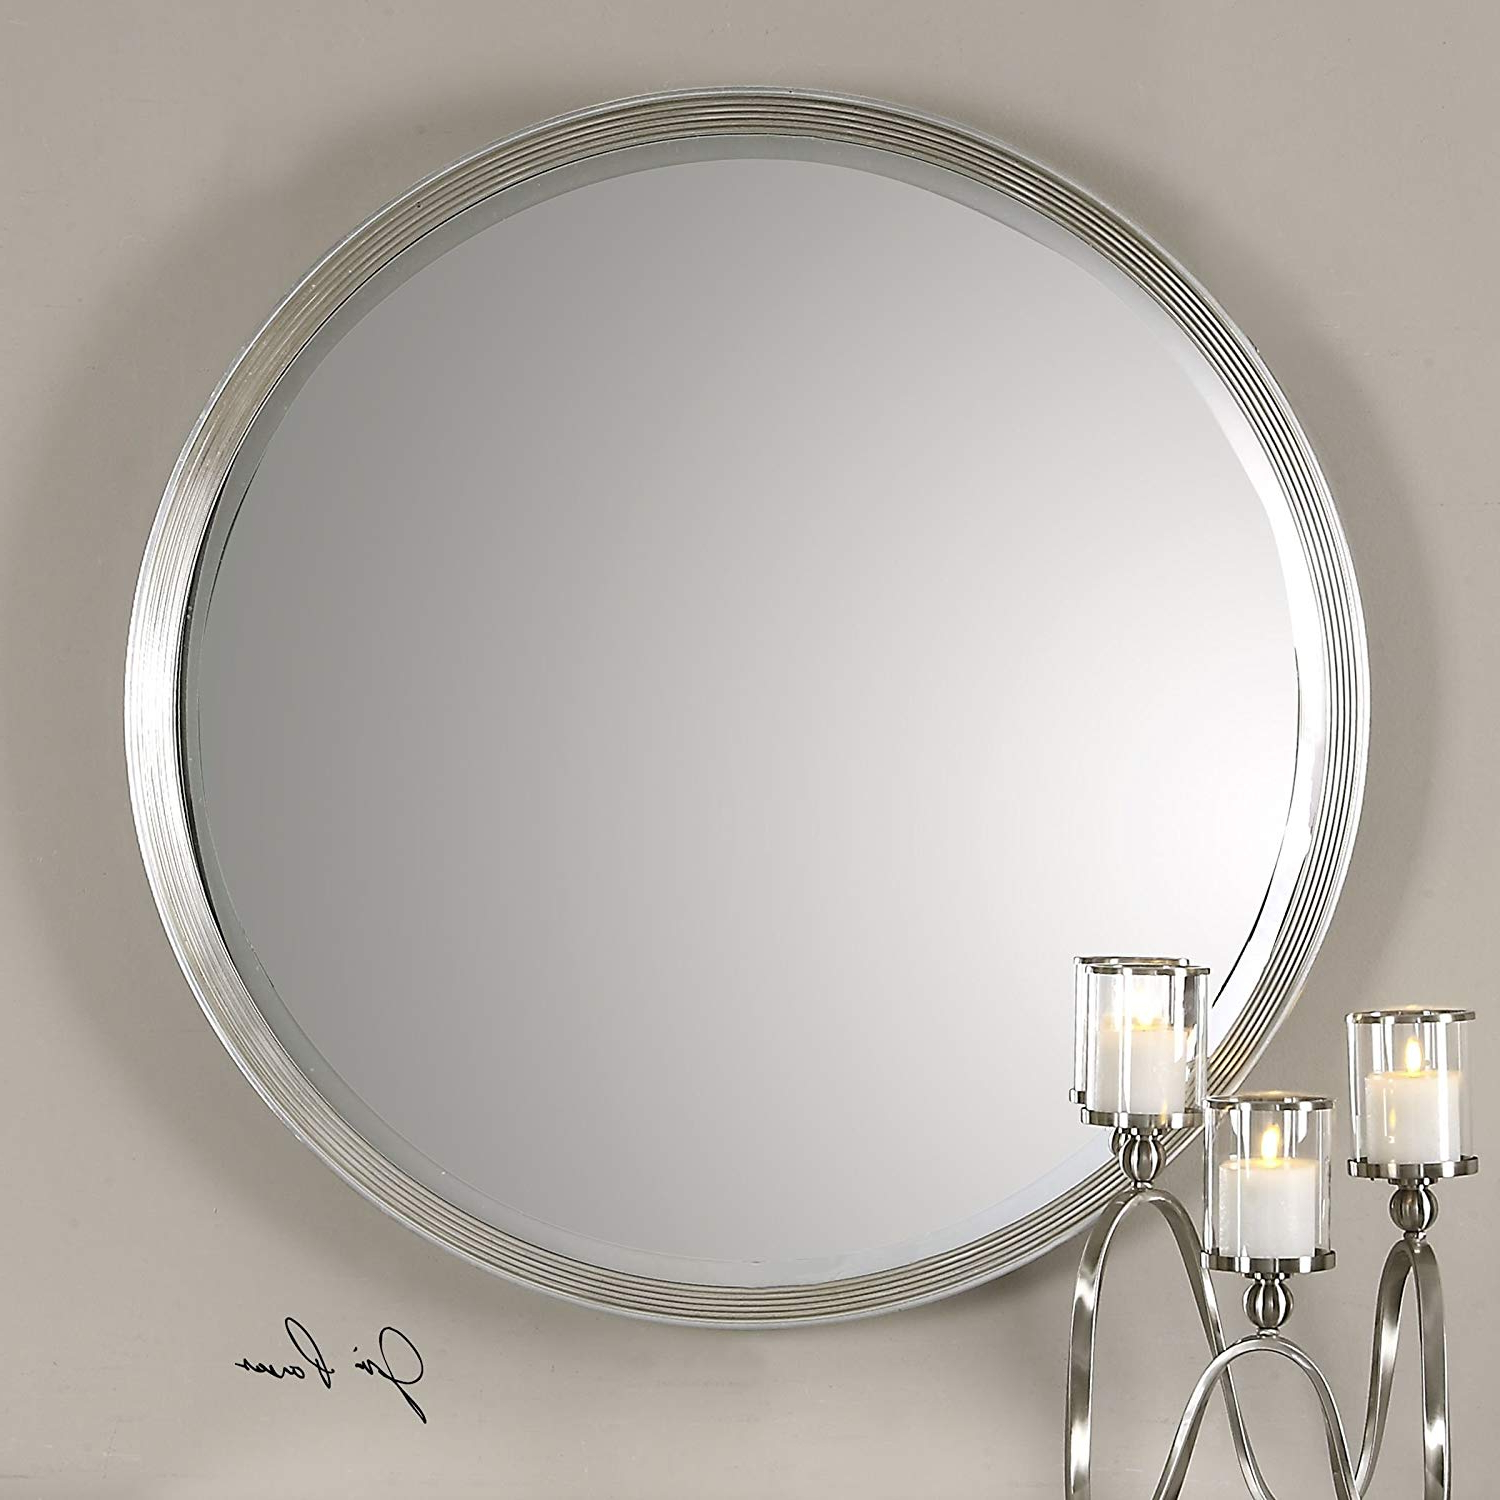 Round Silver Wall Mirrors Pertaining To Trendy Amazon: My Swanky Home Classic Round Silver Wall Mirror (View 13 of 20)